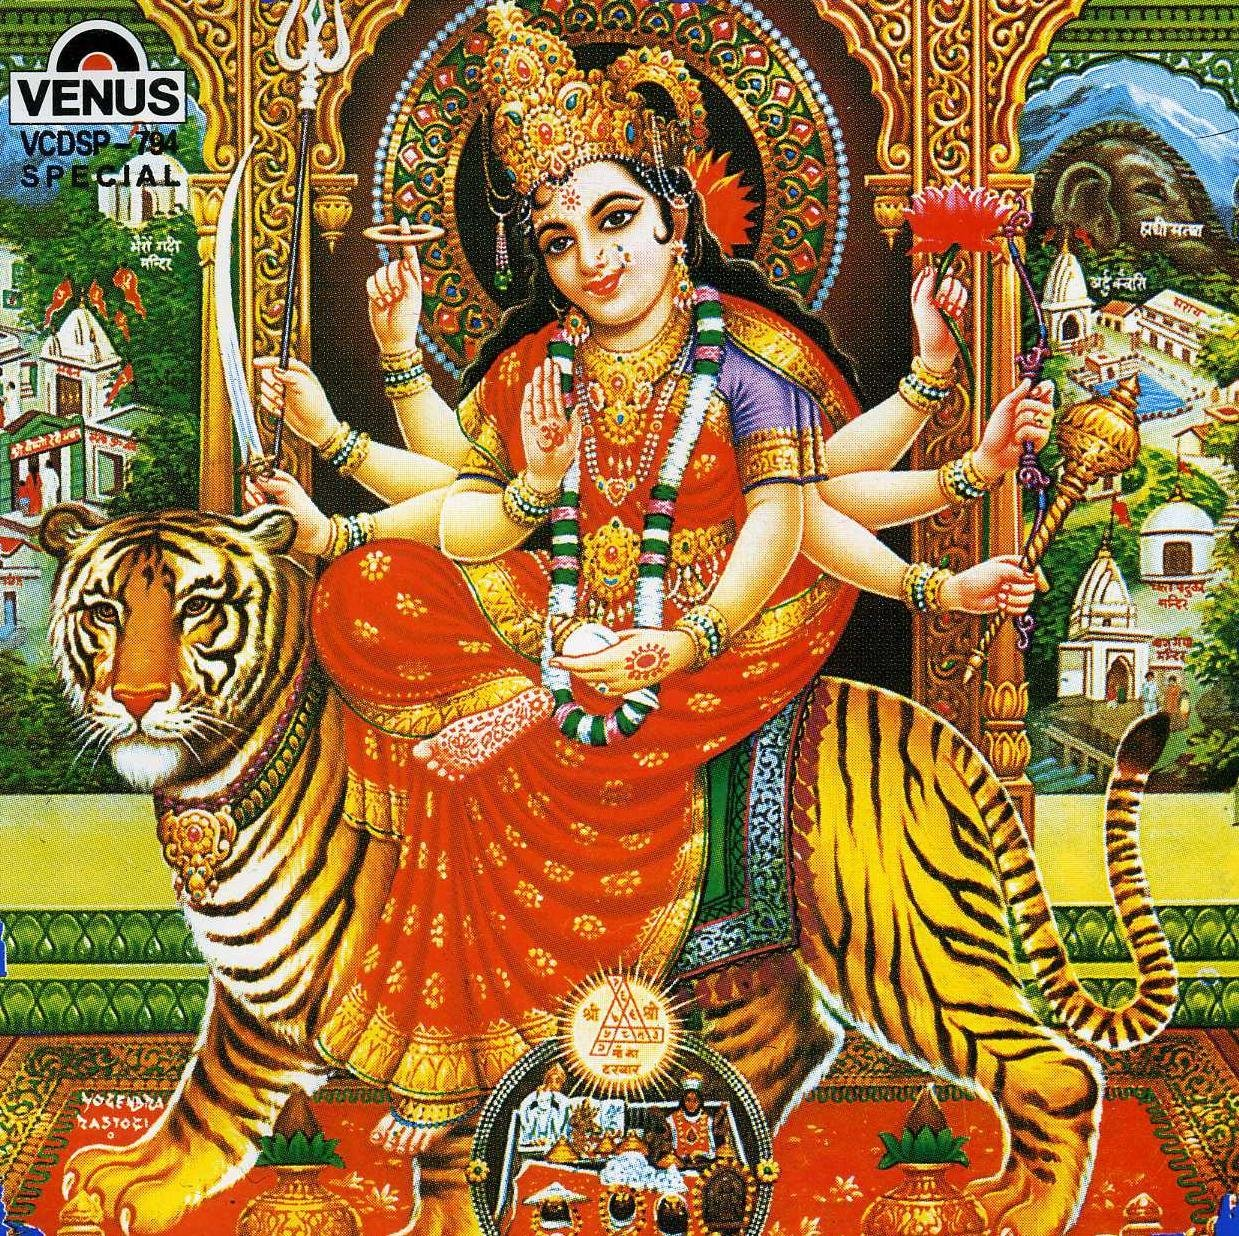 Wallpaper download mata rani - Mata Vaishno Devi Pindi Wallpaper Free Download Vaishno Devi Wallpapers Pinterest Vaishno Devi And Wallpaper